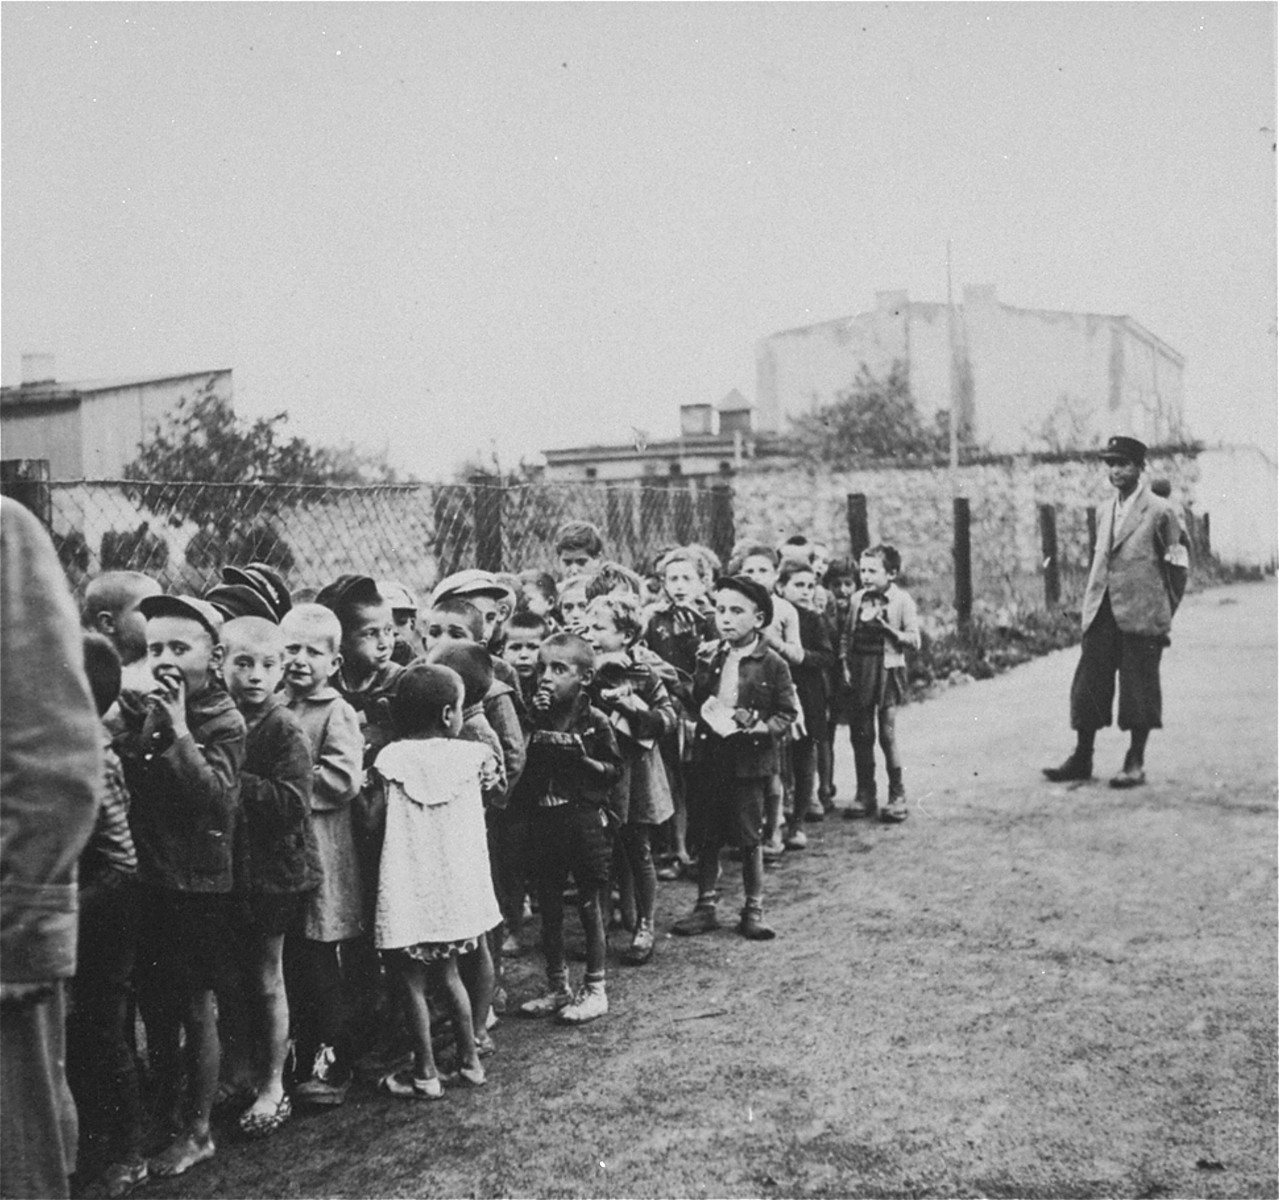 """Children from the Marysin colony who were rounded-up during the """"Gehsperre"""" action in the Lodz ghetto, march in a long column towards a deportation assembly point."""